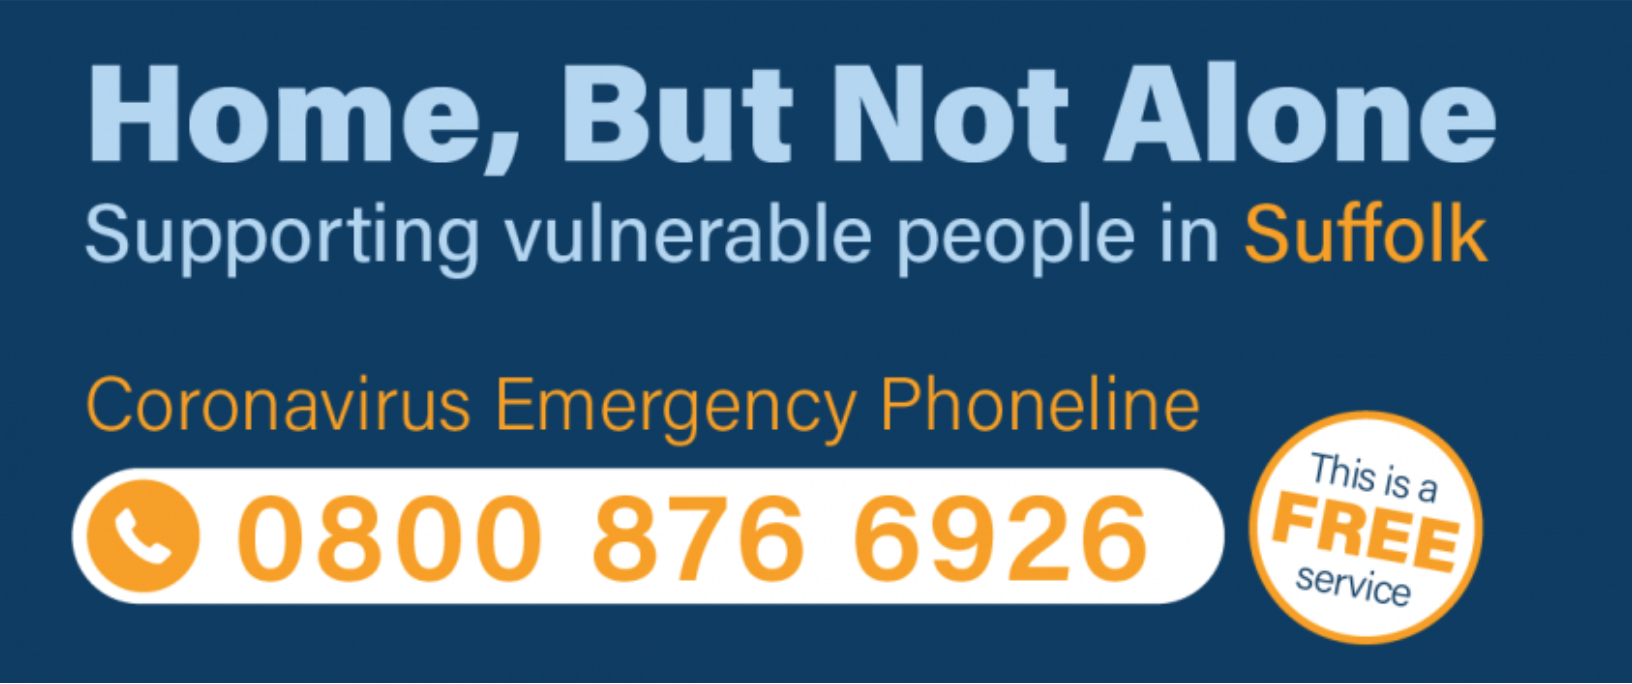 Coronavirus Free Emergency Helpline 0800 876 6926